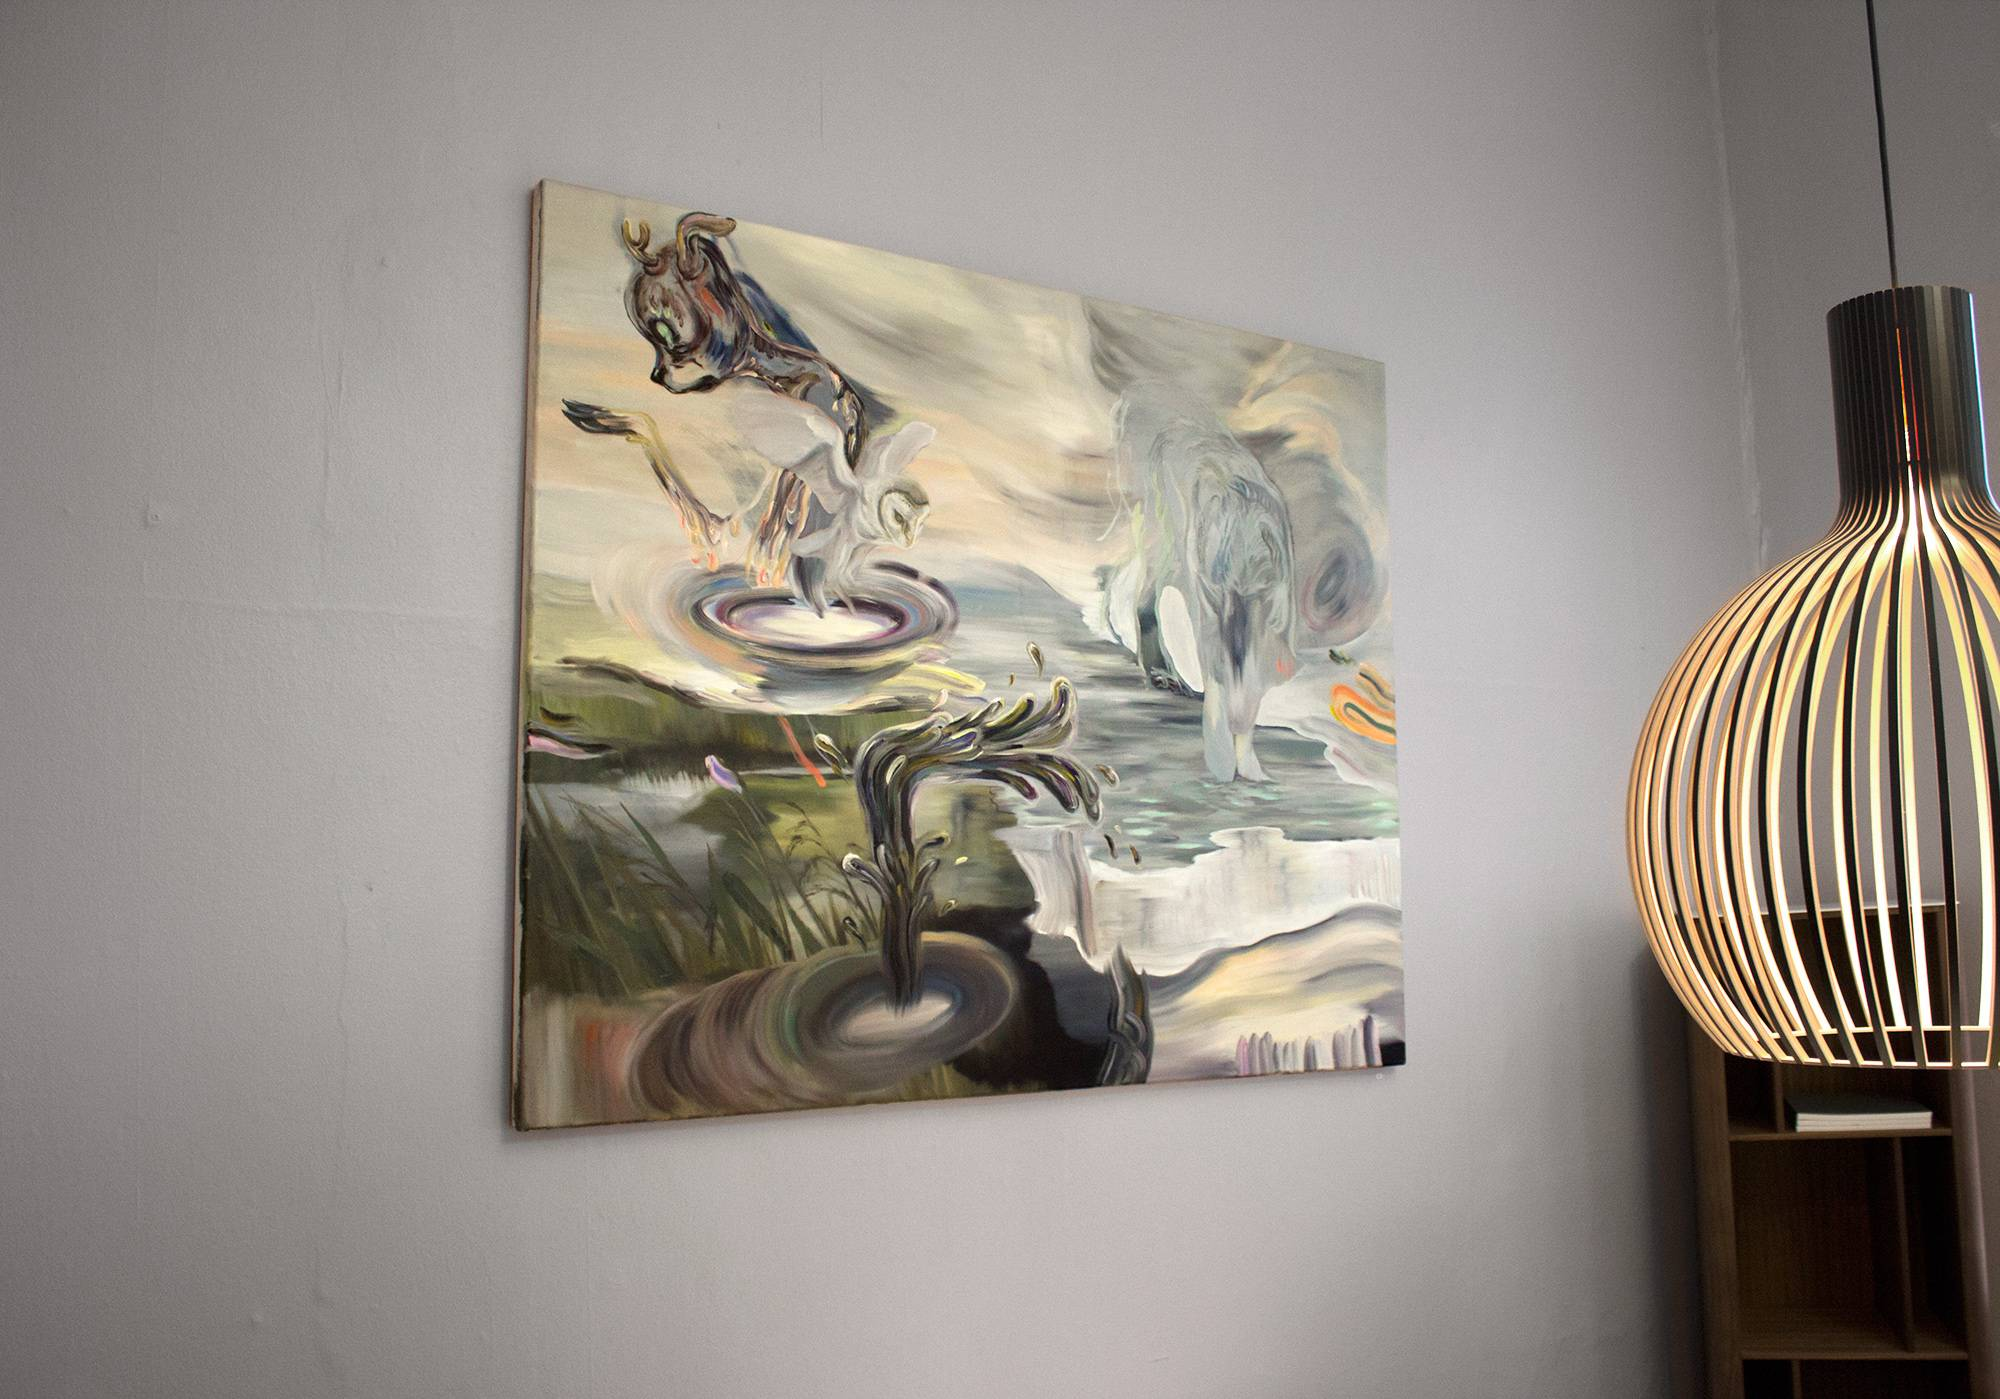 Art exhibitions in Copenhagen. Modern, colorful and abstract paintings. Beautiful and beautiful drawings. Limited edition art posters, art prints and posters. Discover art from talented and talented artists.